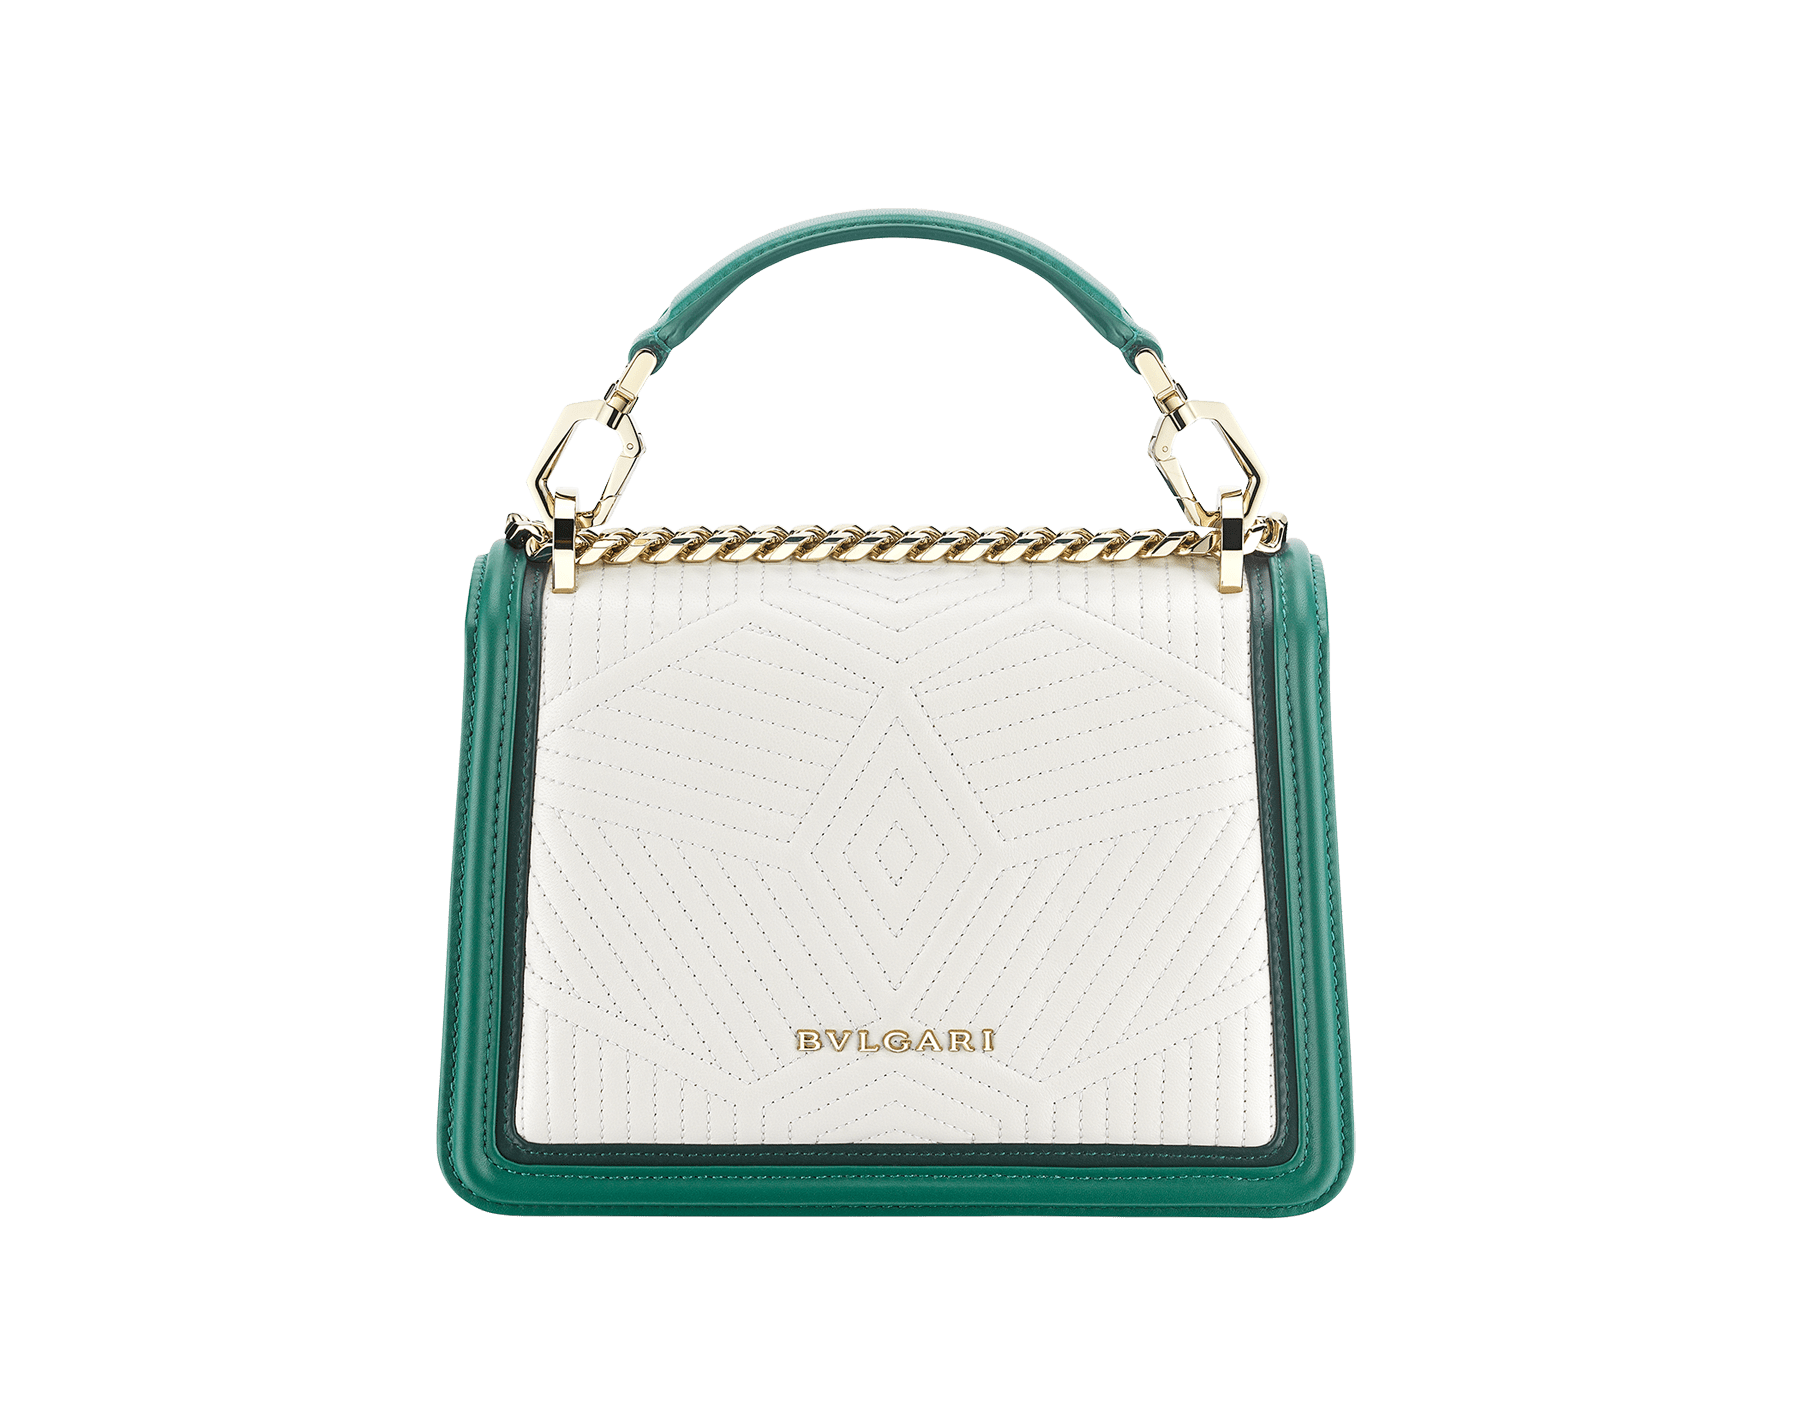 """""""Serpenti Diamond Blast"""" crossbody bag in mimetic jade quilted nappa leather and mimetic jade smooth calf leather frames. Tempting snakehead closure in light gold plated brass enriched with matte black and shiny mimetic jade enamel and black onyx eyes. 1063-FQDb image 3"""